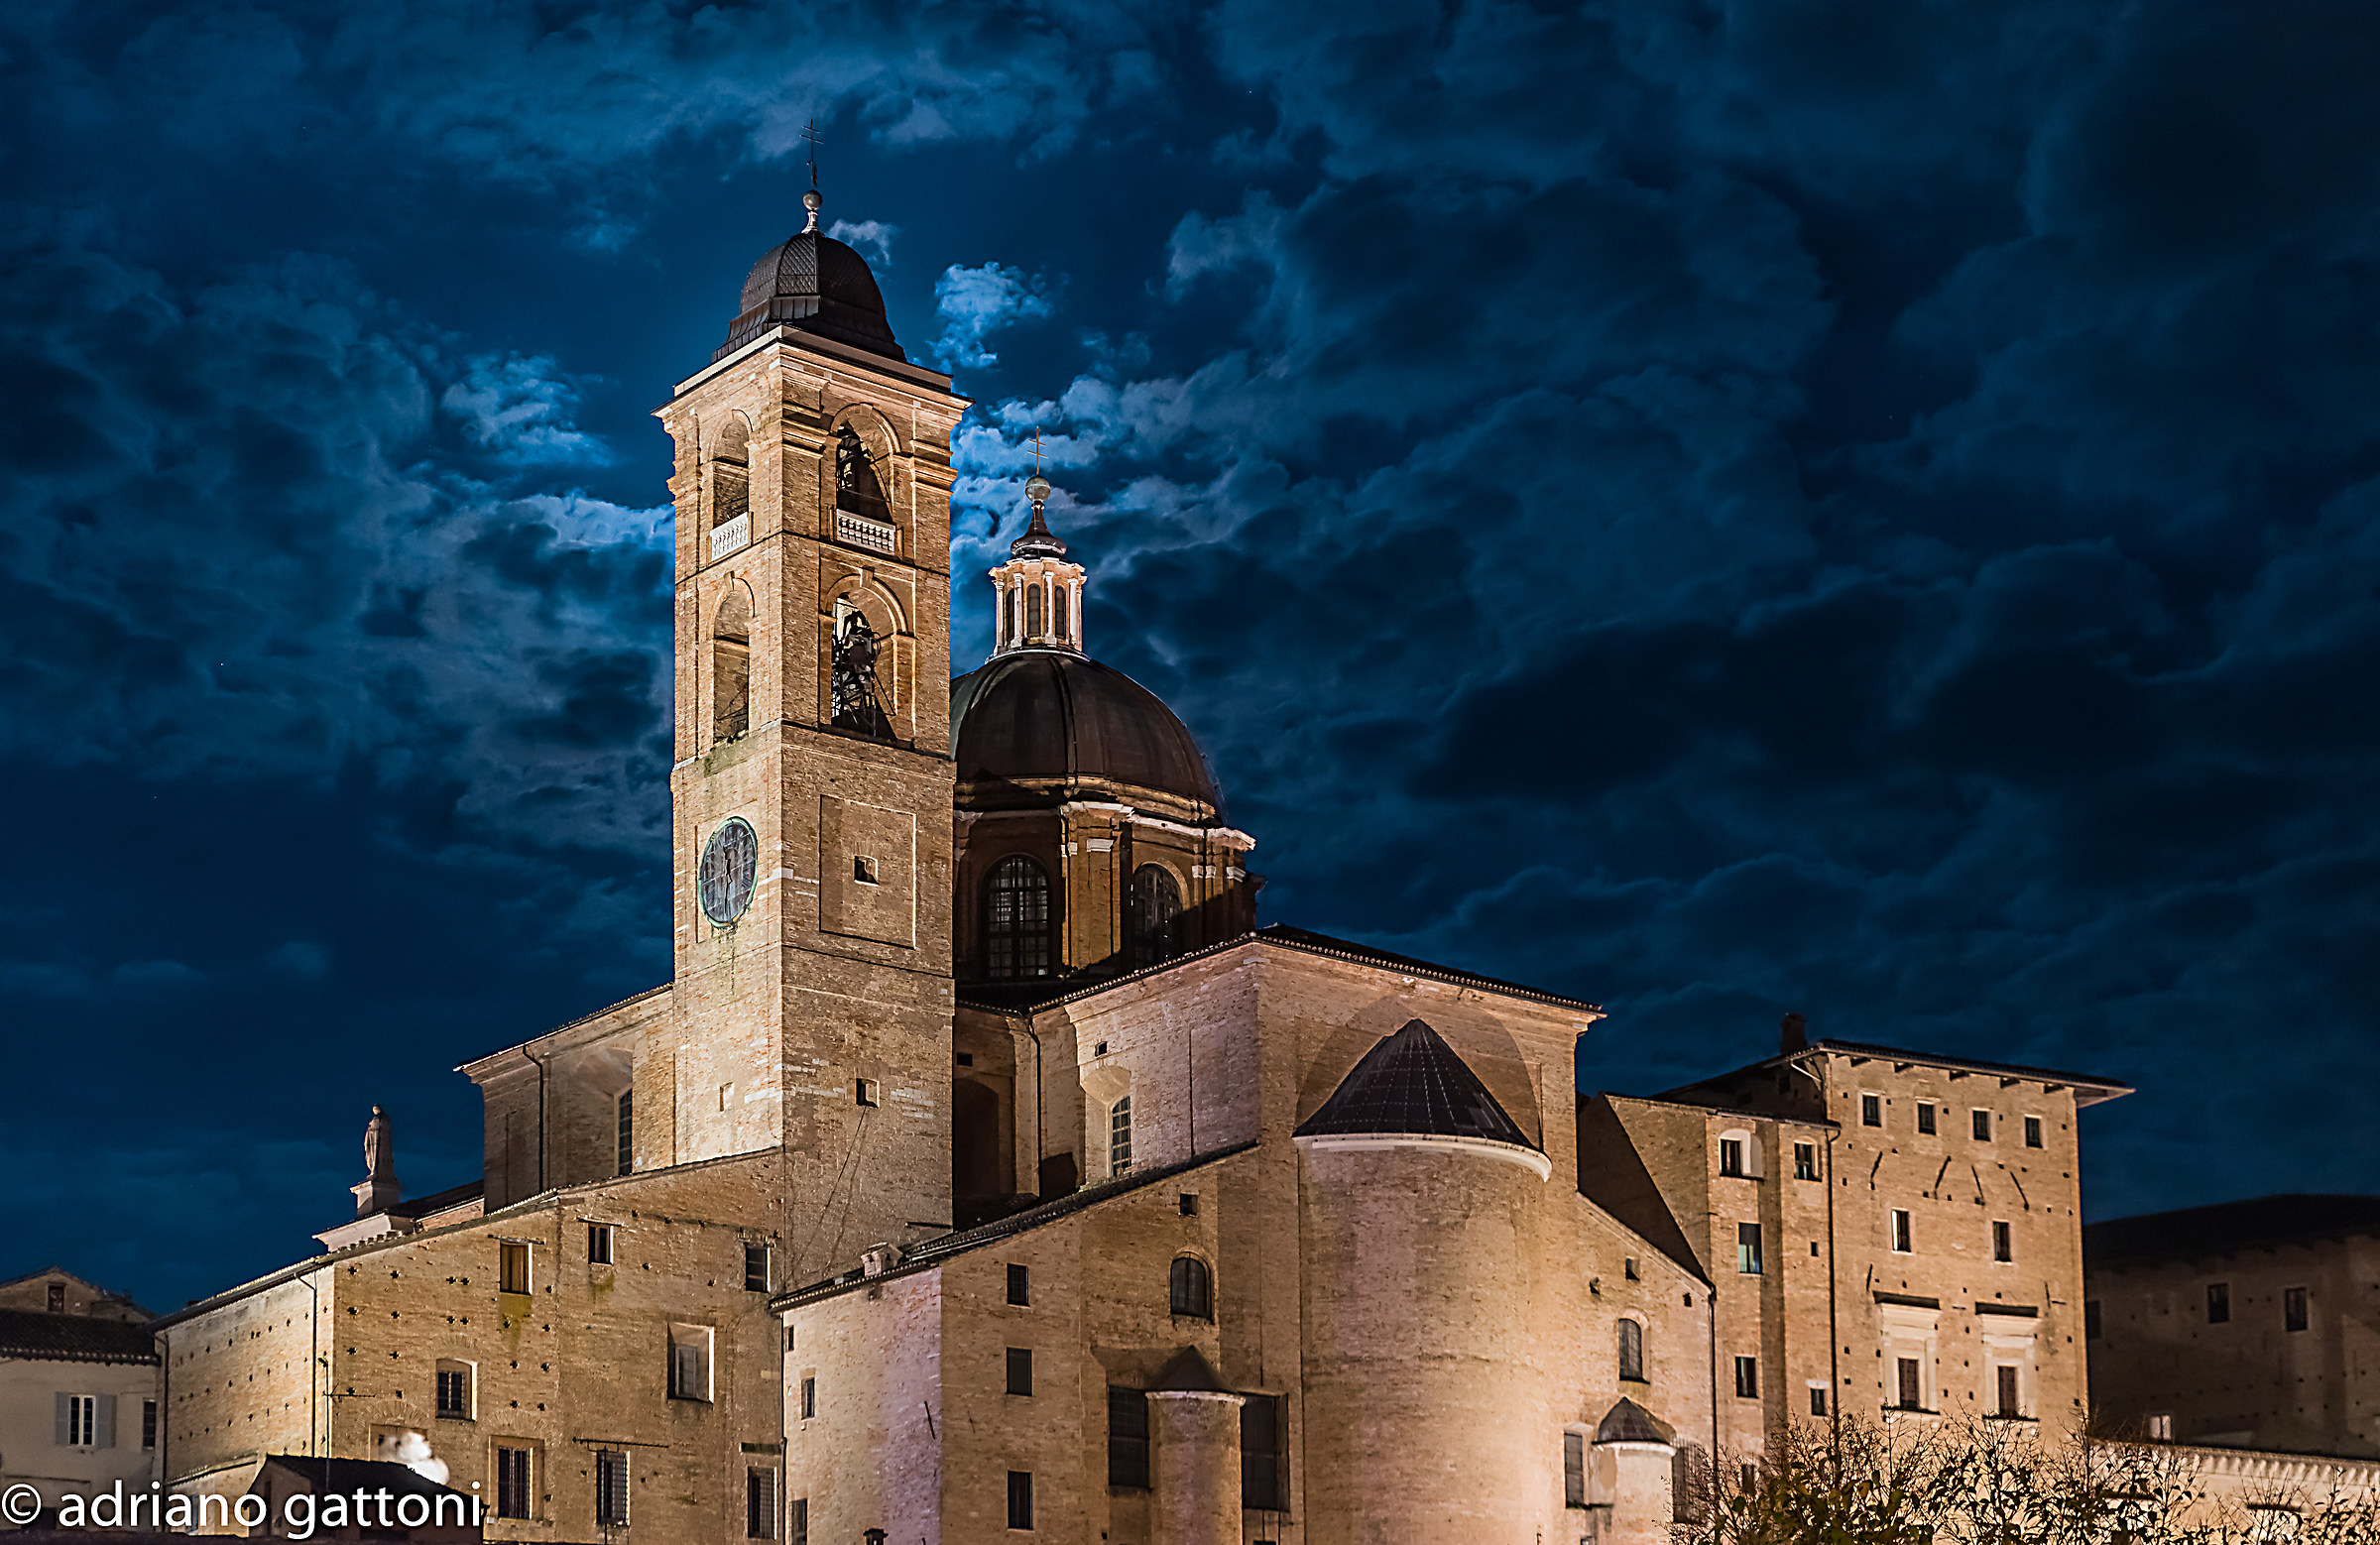 The sky above ... Urbino!...